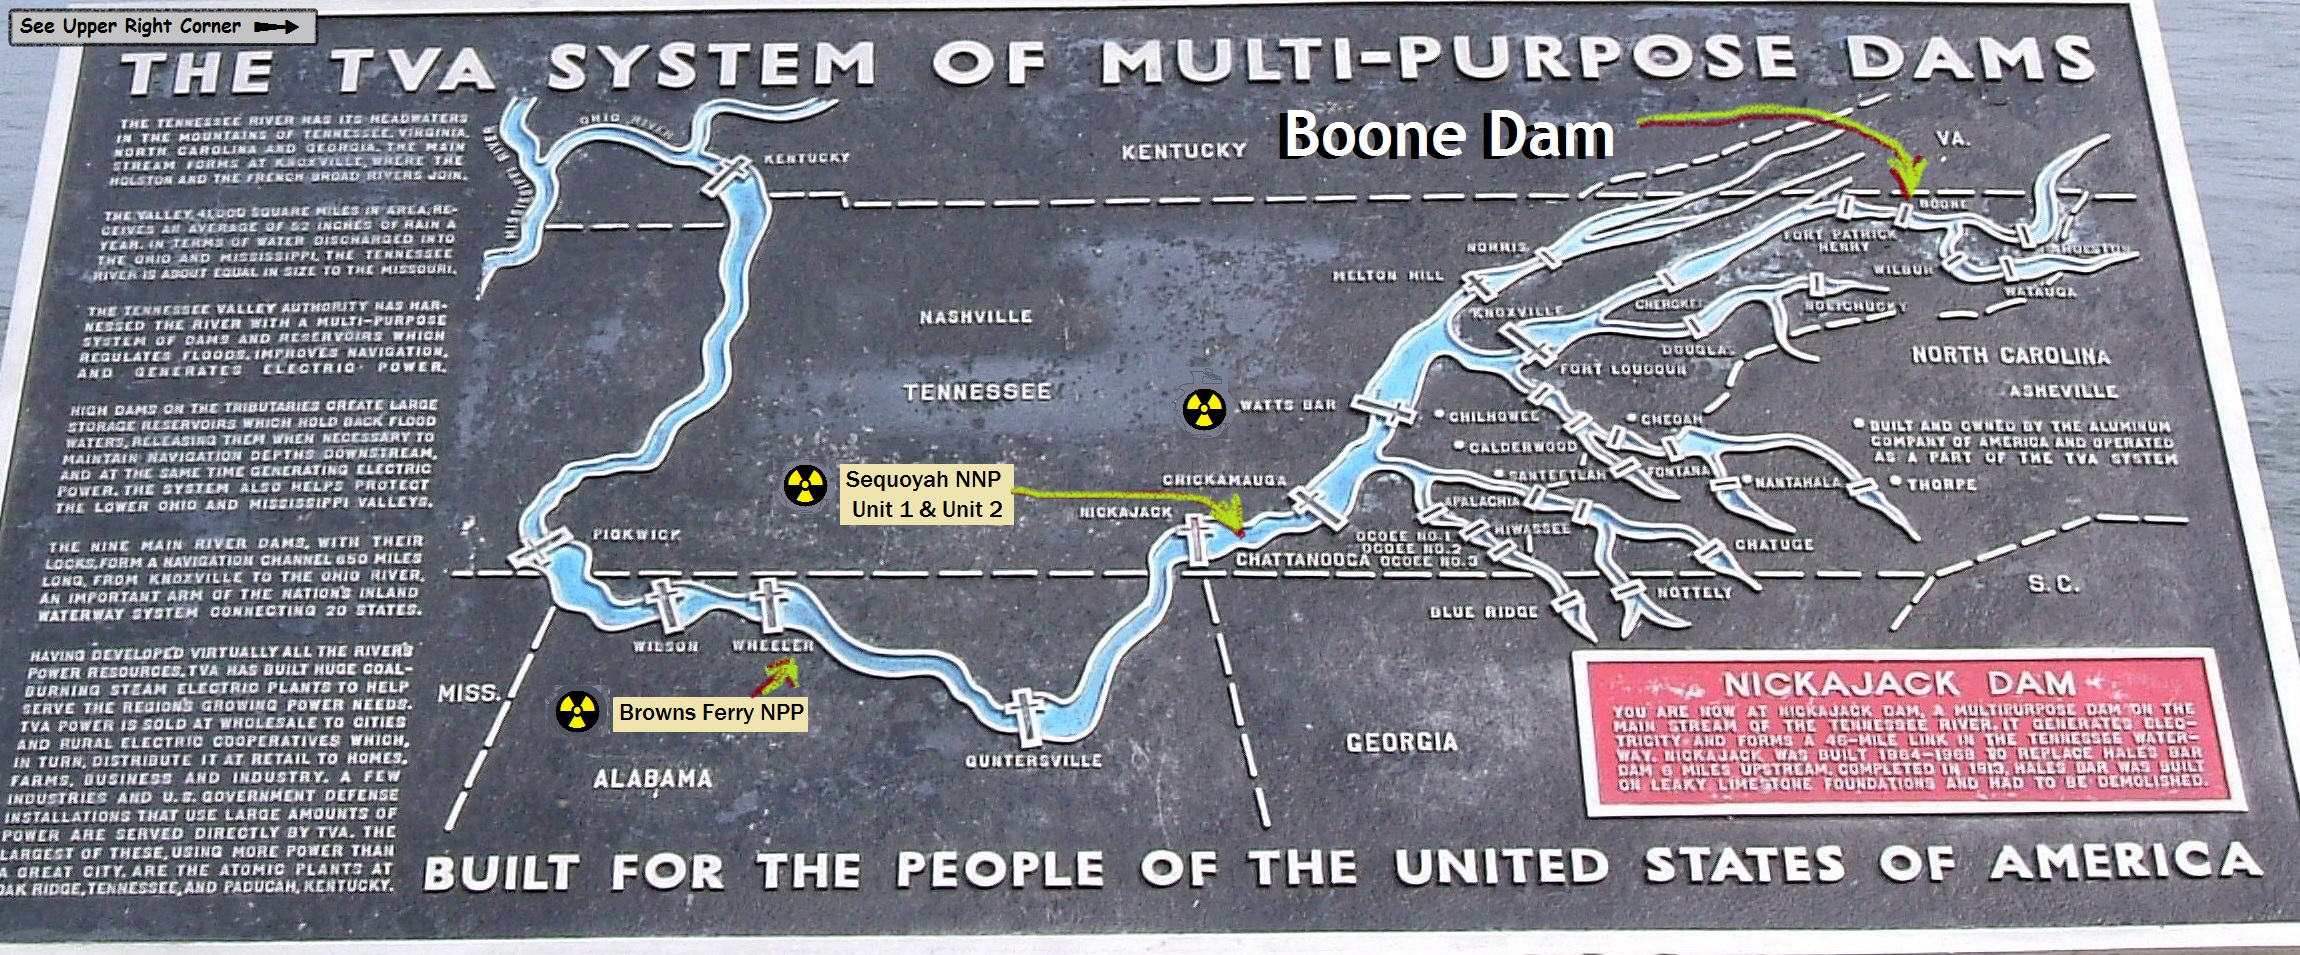 Boone Dam In Tenn Worsens Above Some Nuke Plants The Louisiana - Tva hunting maps